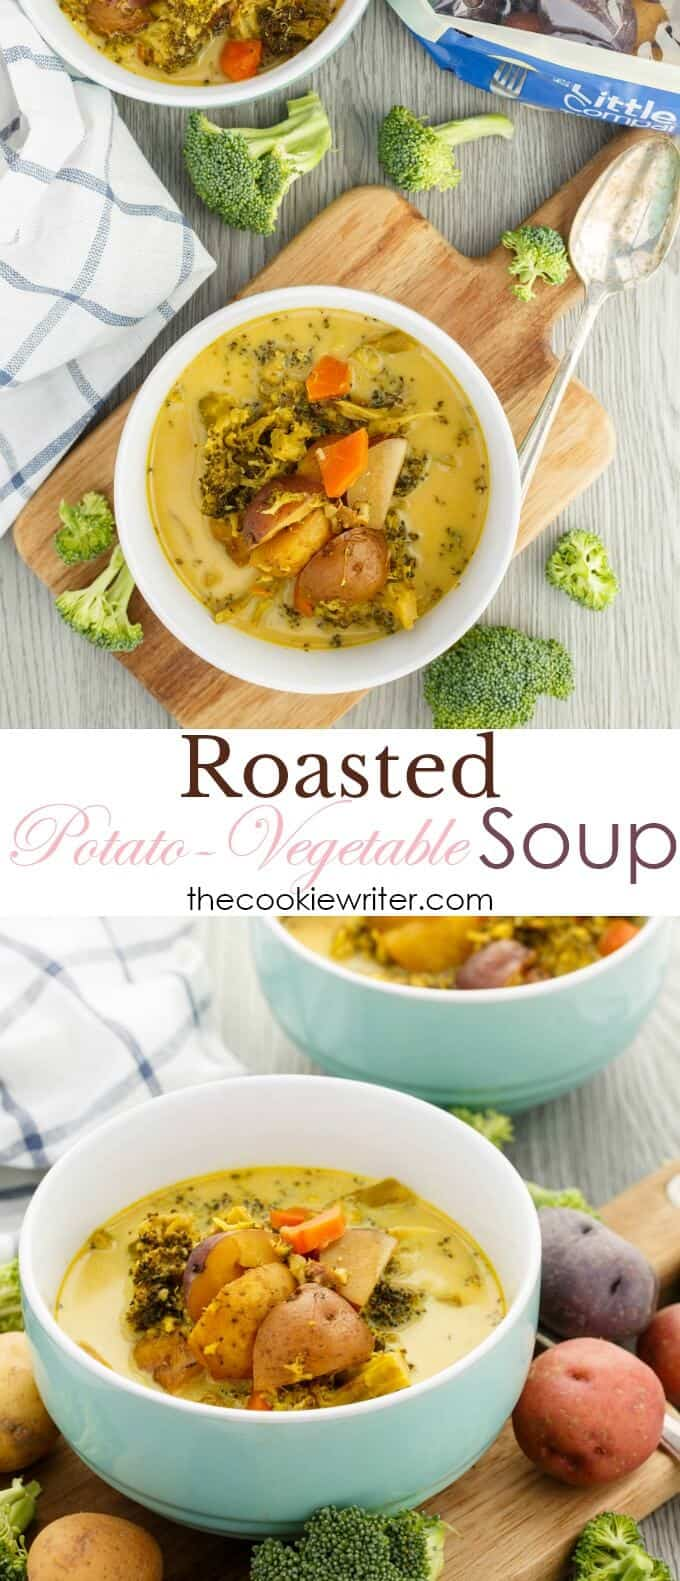 Roasted Potato-Vegetable Soup (Vegan Version Included)